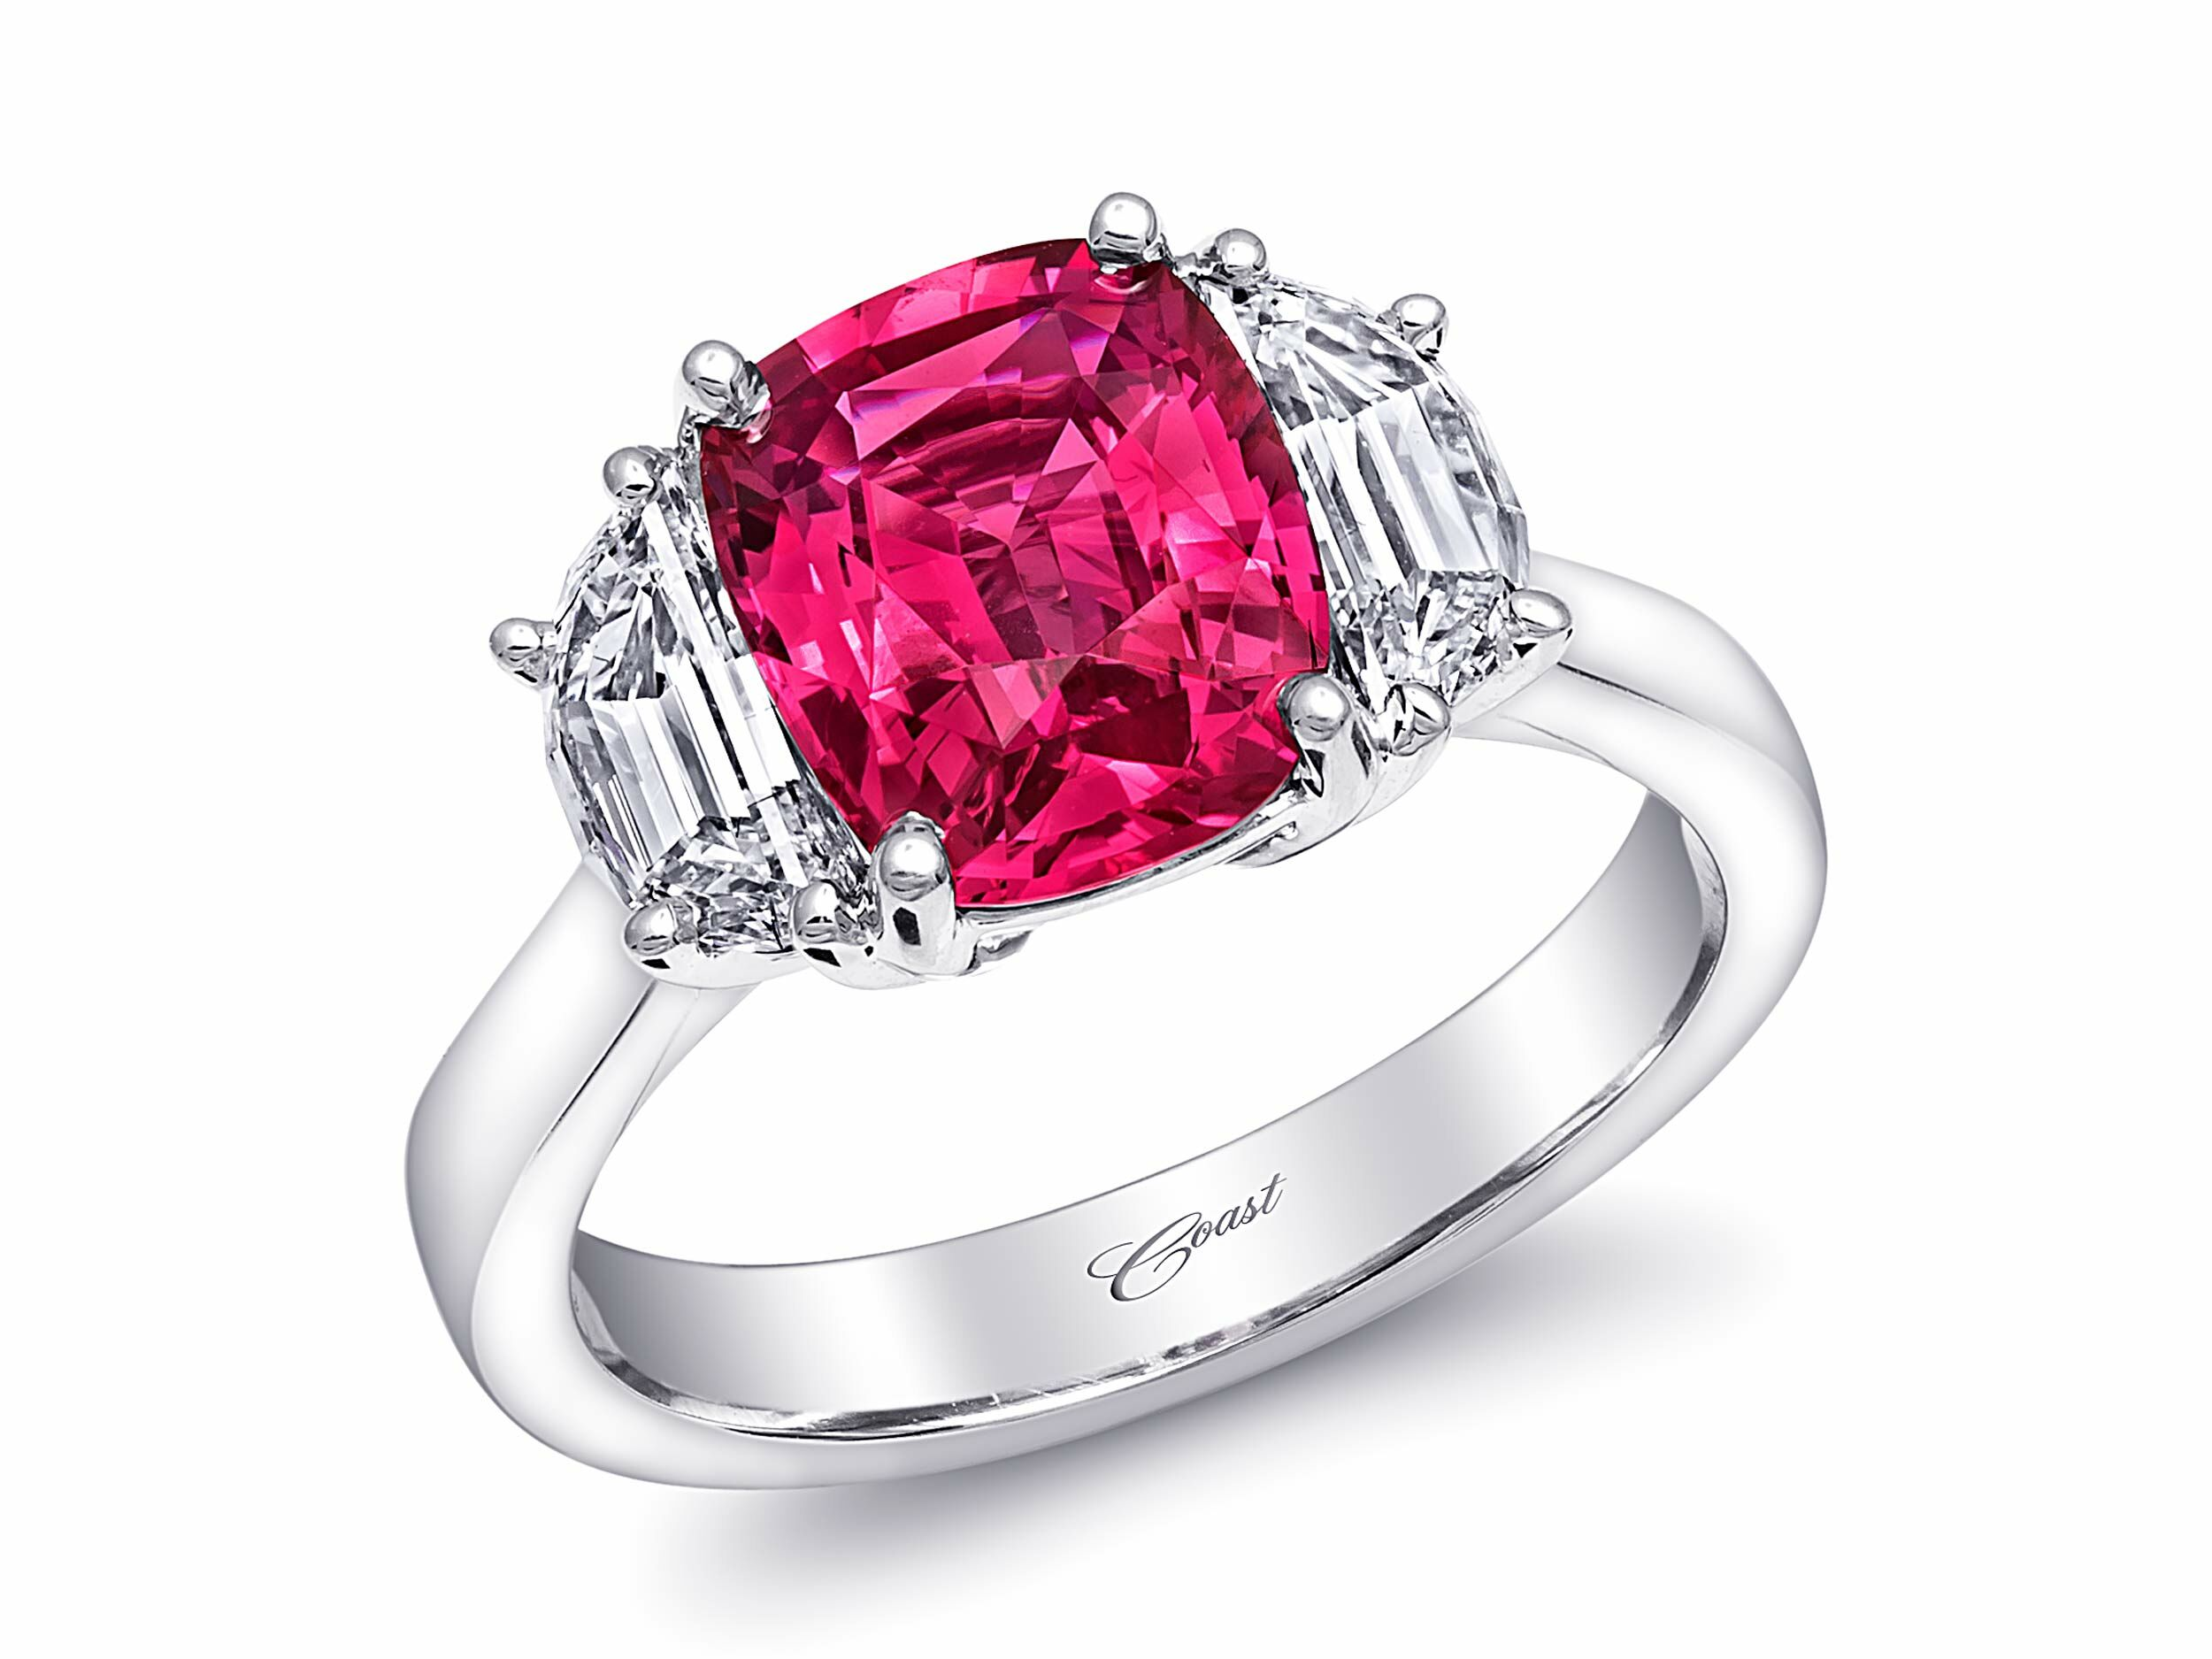 look rings topic which that anyone parade makes unique it is of engagement just like img crown lyria their way prongs got kind signature in mine the has i petals